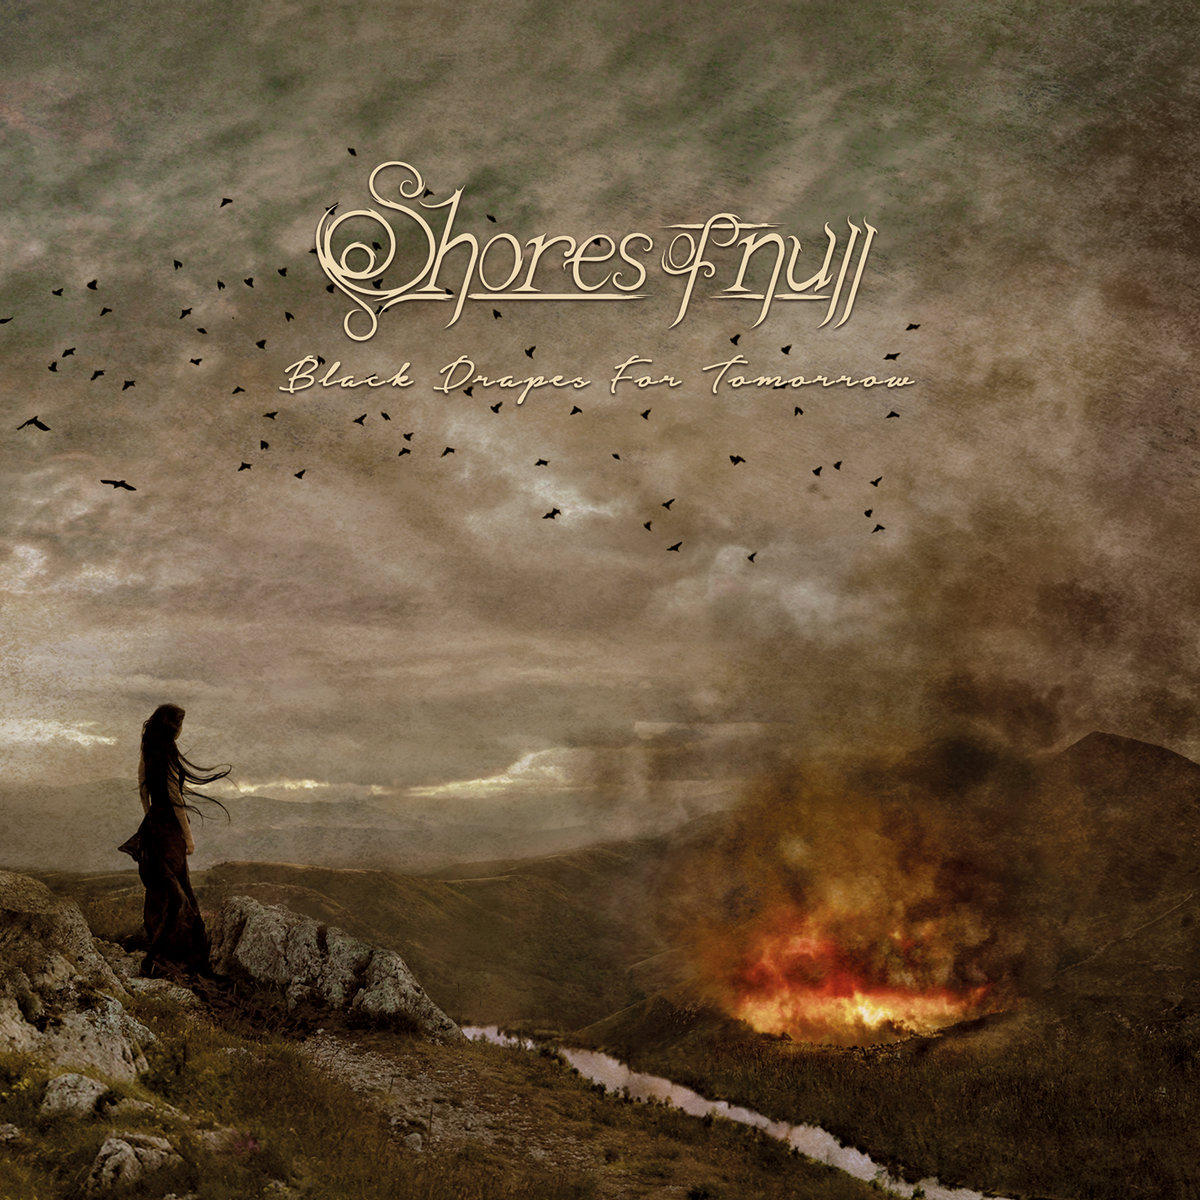 Black drapes for tomorrow shores of null black drapes for tomorrow digipack cd hexwebz Images